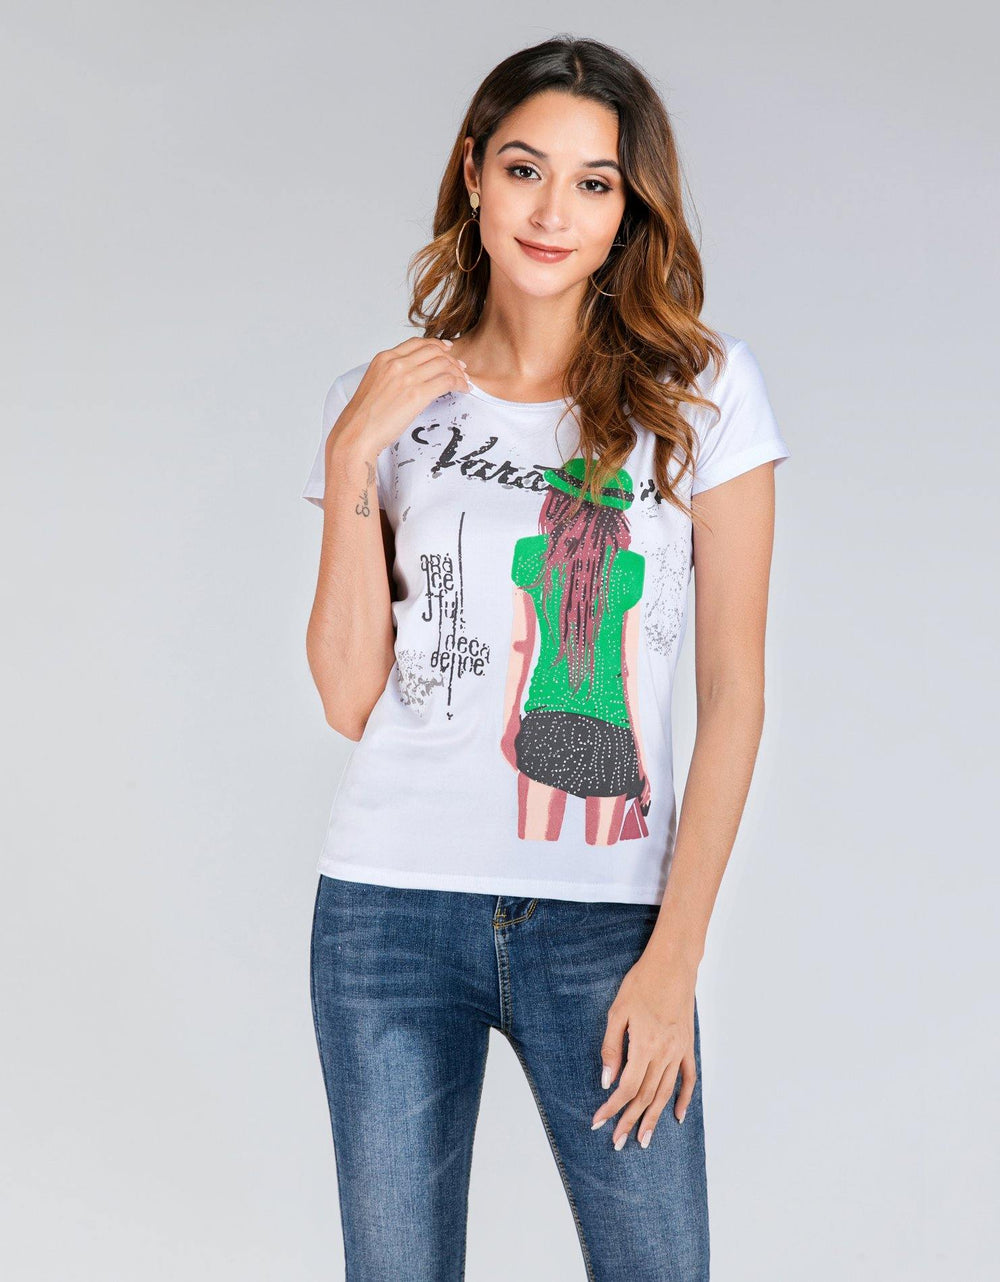 Girl In Green Tee - Brandsea UK